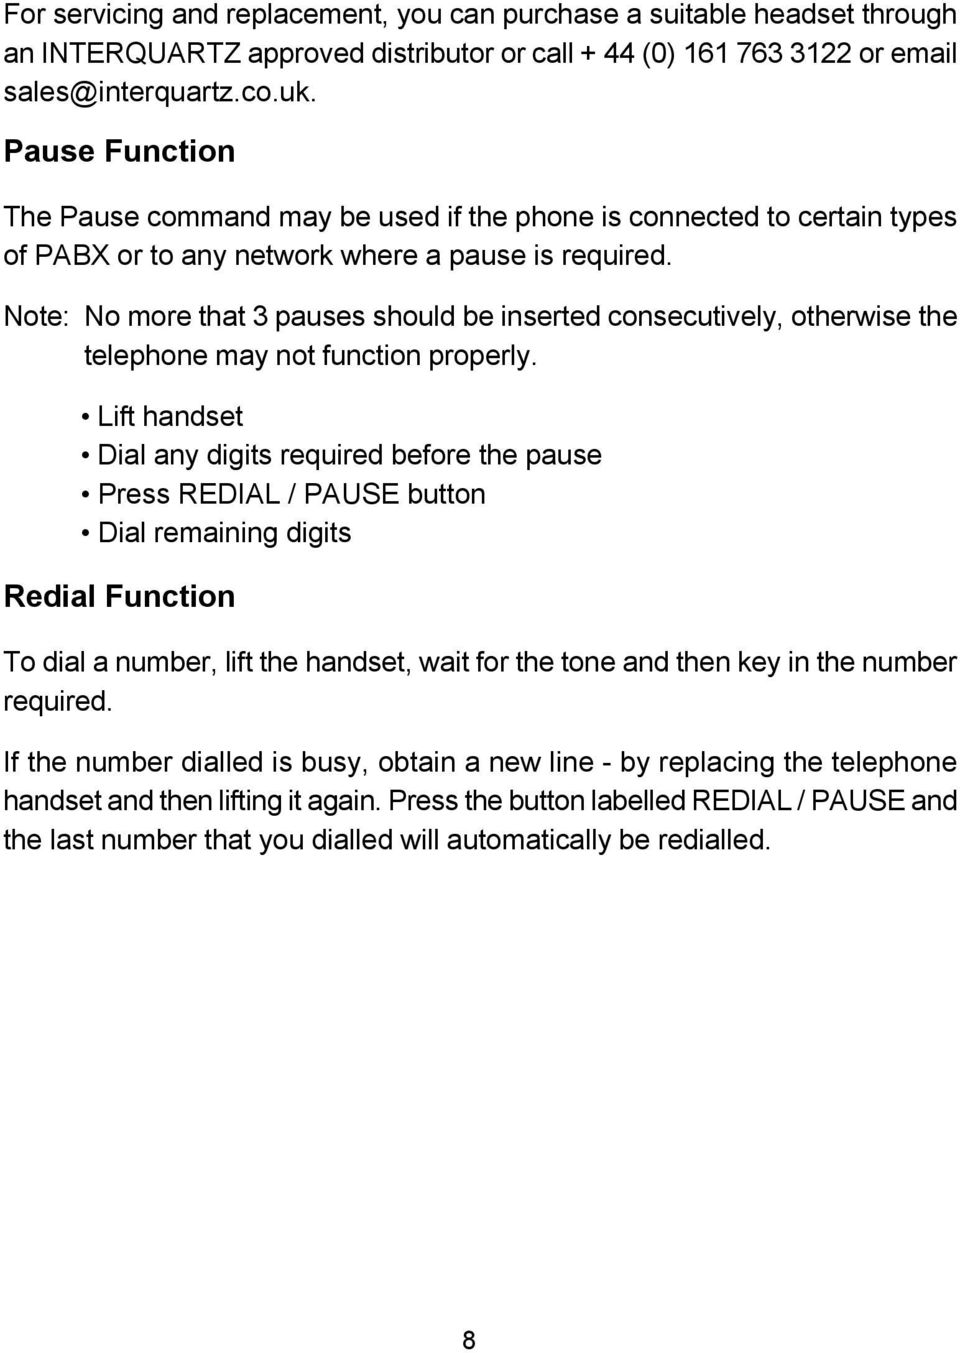 Note: No more that 3 pauses should be inserted consecutively, otherwise the telephone may not function properly.